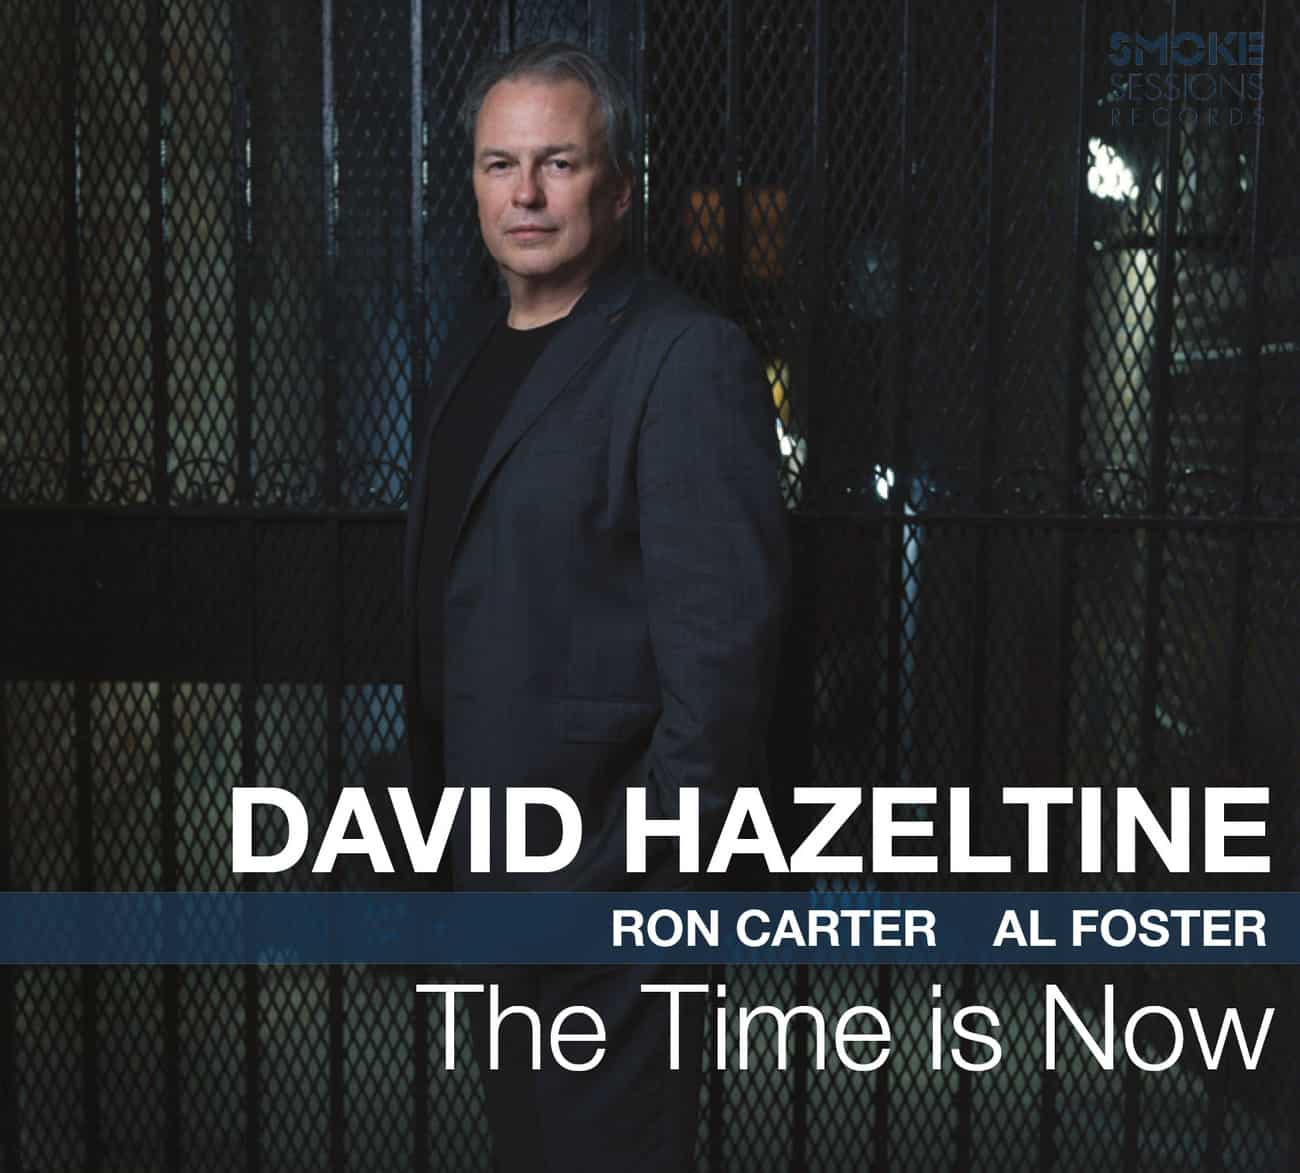 David Hazeltine THE TIME IS NOW_Cover WEB